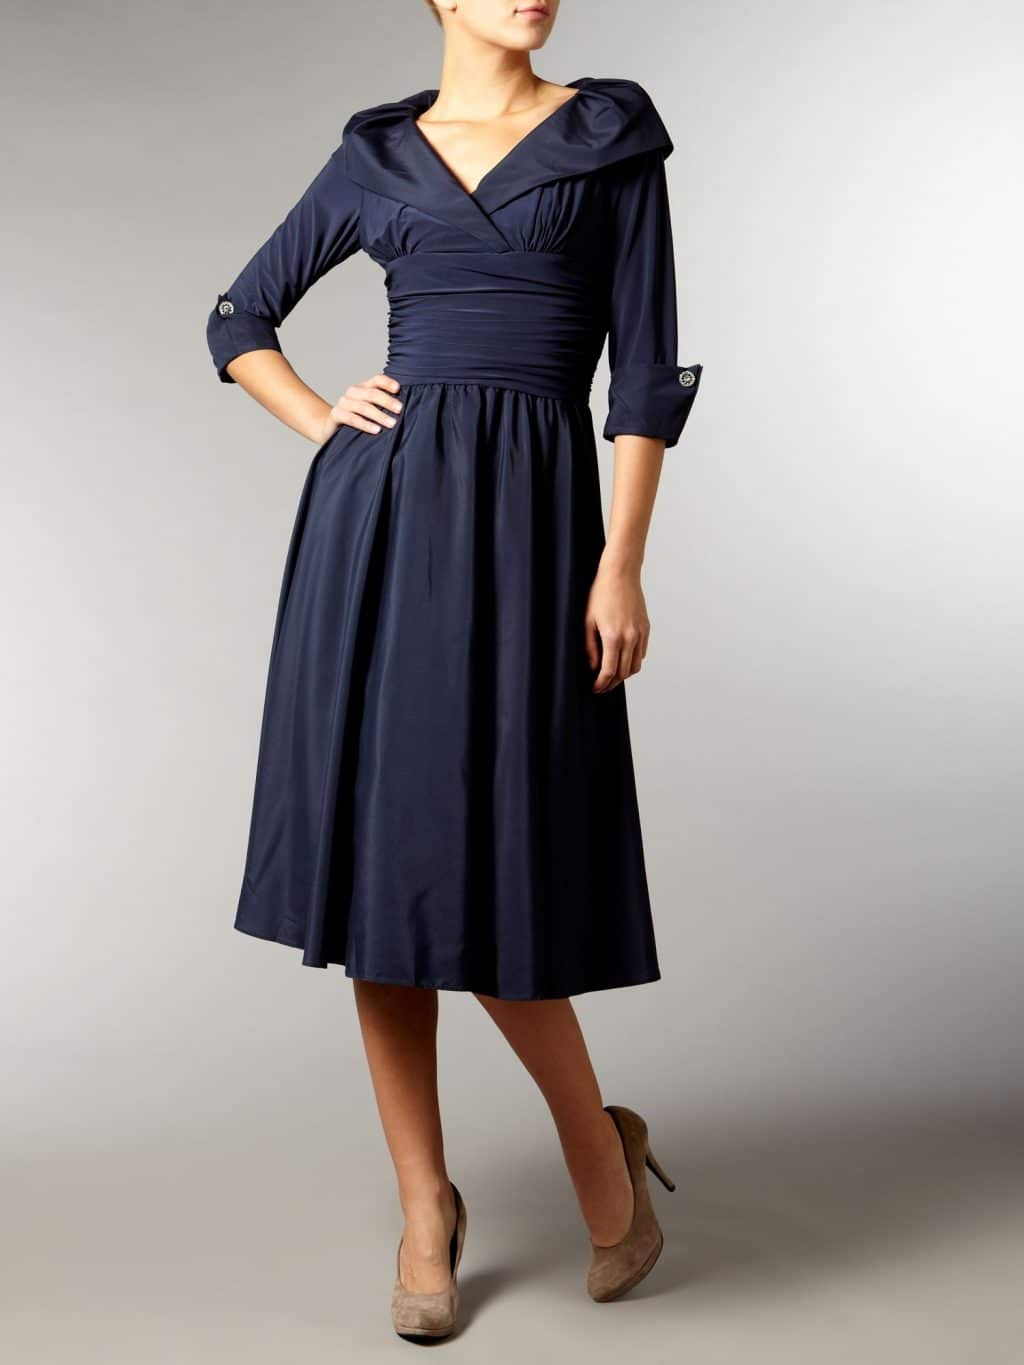 ELIZA J Cuff Sleeve V Neck Ruched Waist Navy Dress - We Select Dresses